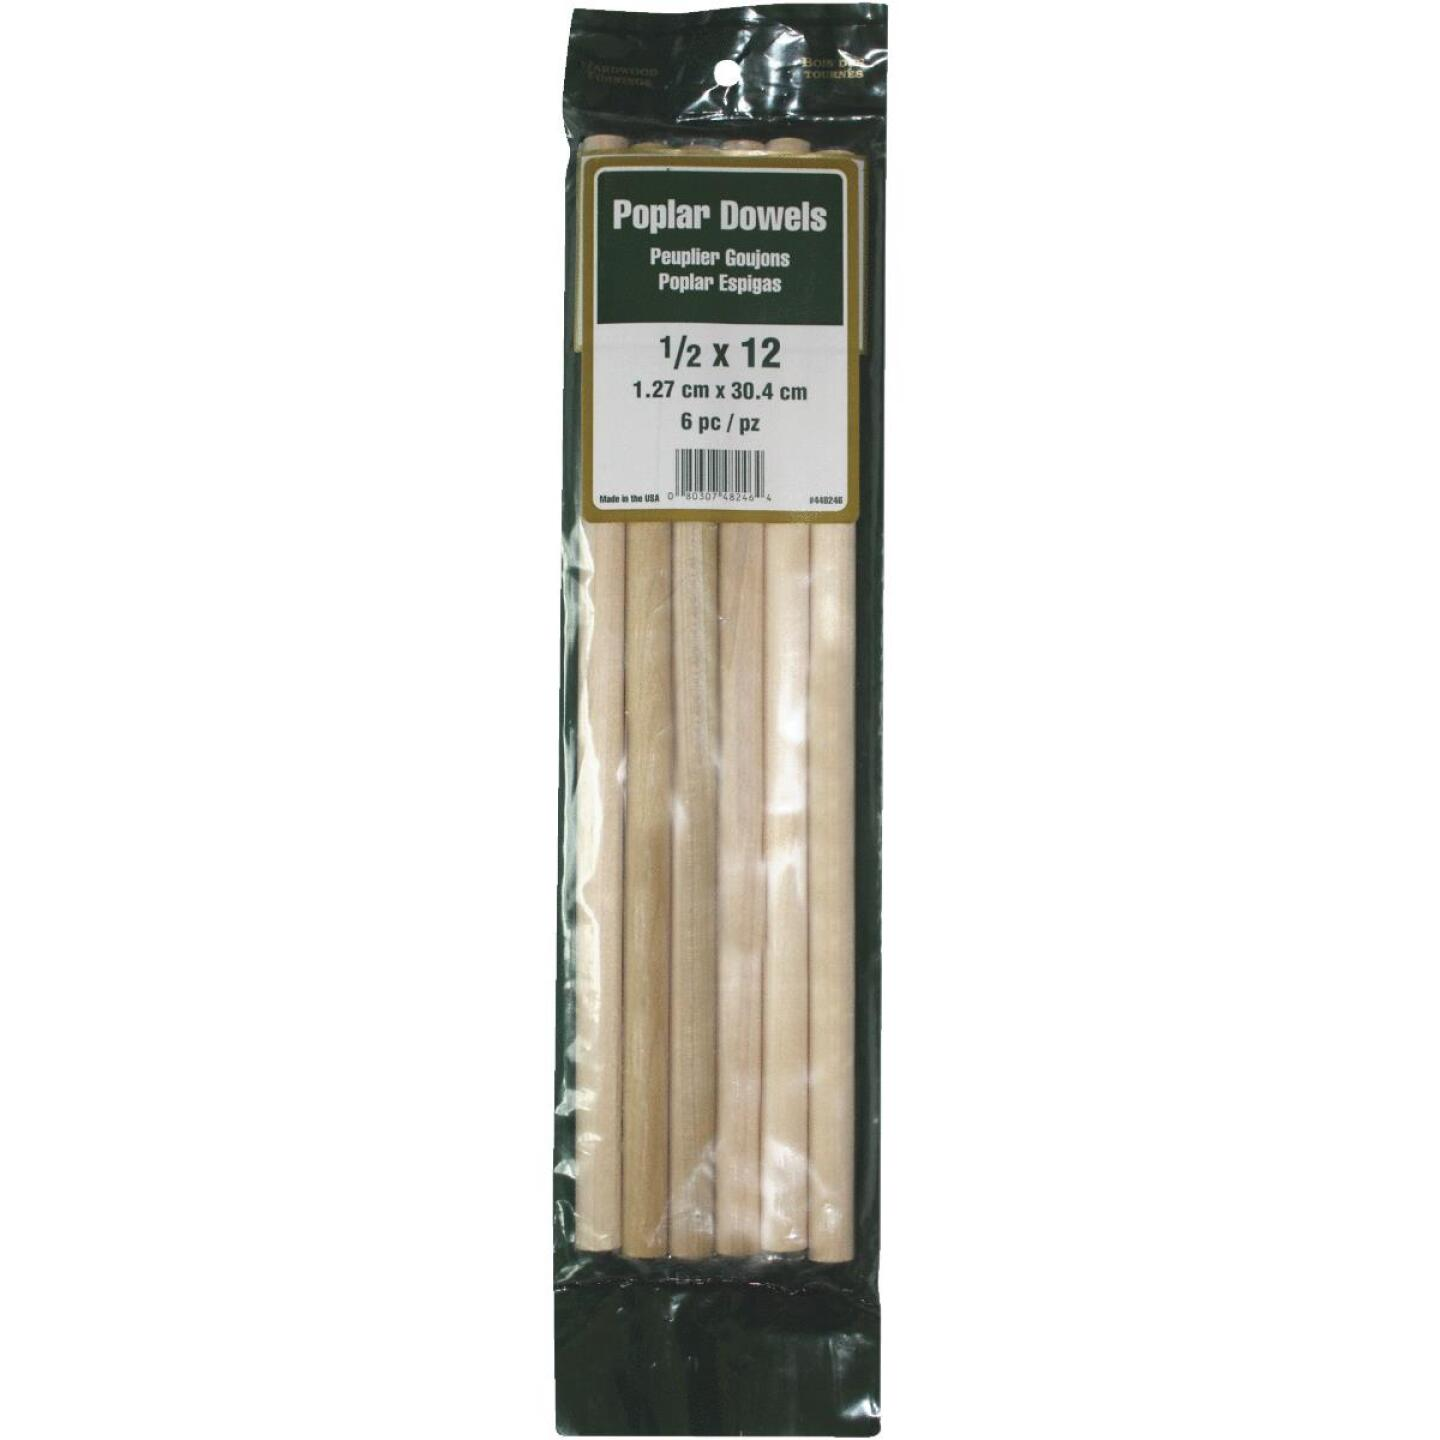 Madison Mill 1/2 In. x 12 In. Poplar Dowel Rod (6 Pieces) Image 1